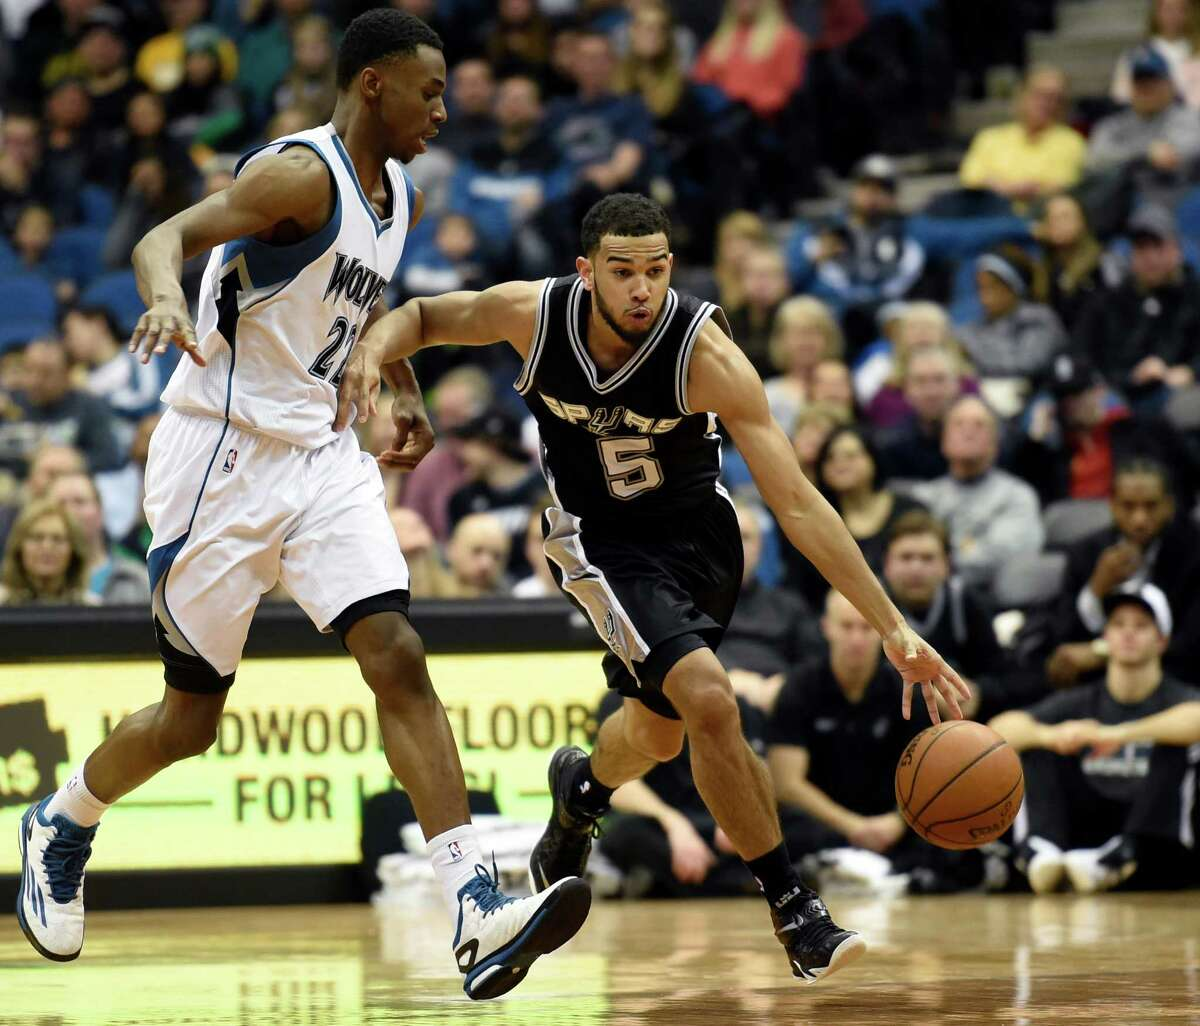 Minnesota Timberwolves forward Andrew Wiggins (left) defends San Antonio Spurs guard Cory Joseph (5) during the second quarter of an NBA basketball game Saturday, Jan. 10, 2015, in Minneapolis.